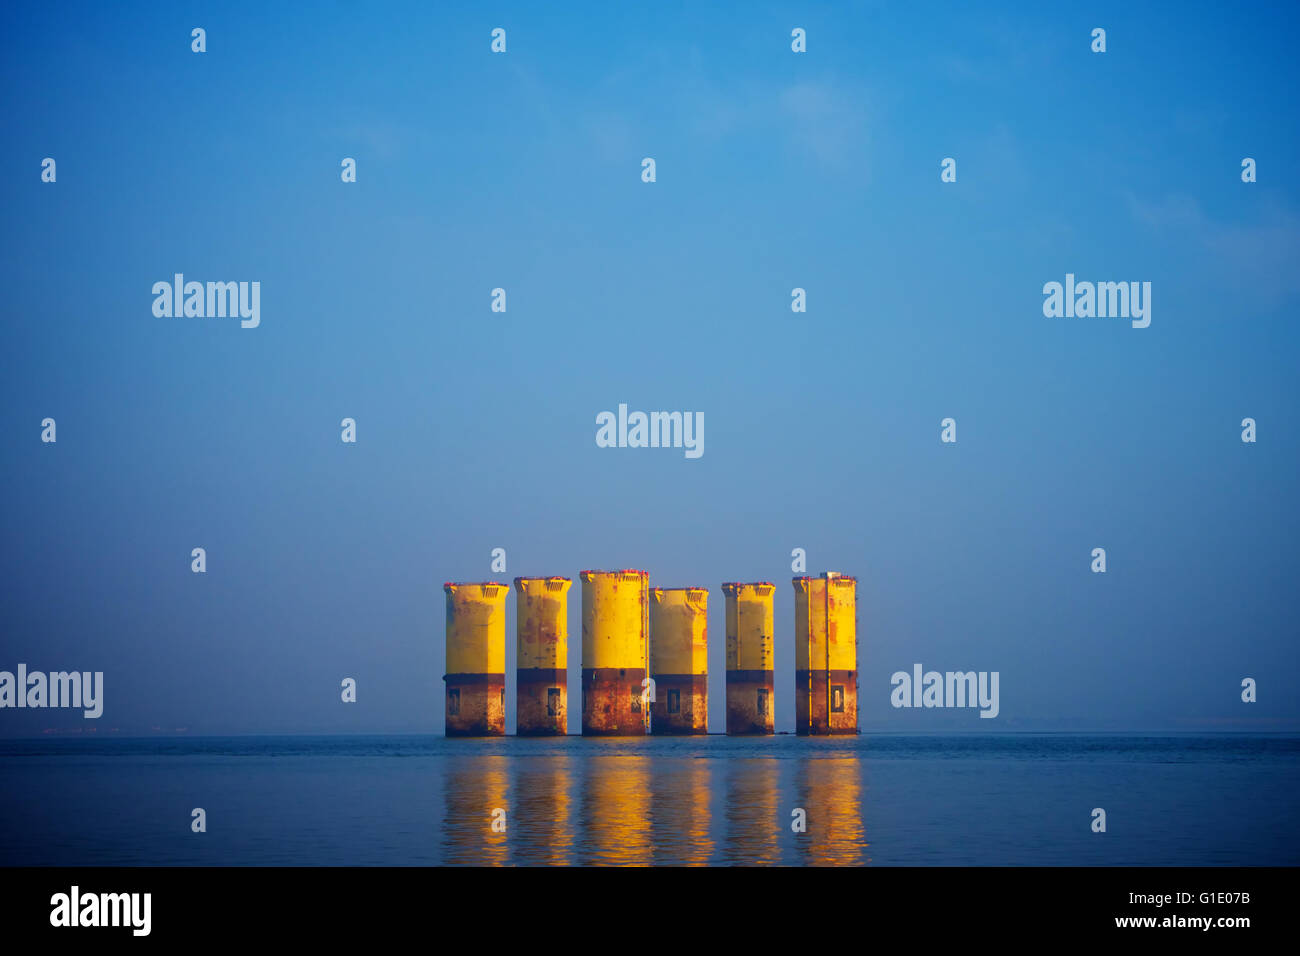 Oil rig legs standing the deep water of the Cromarty Firth - Stock Image